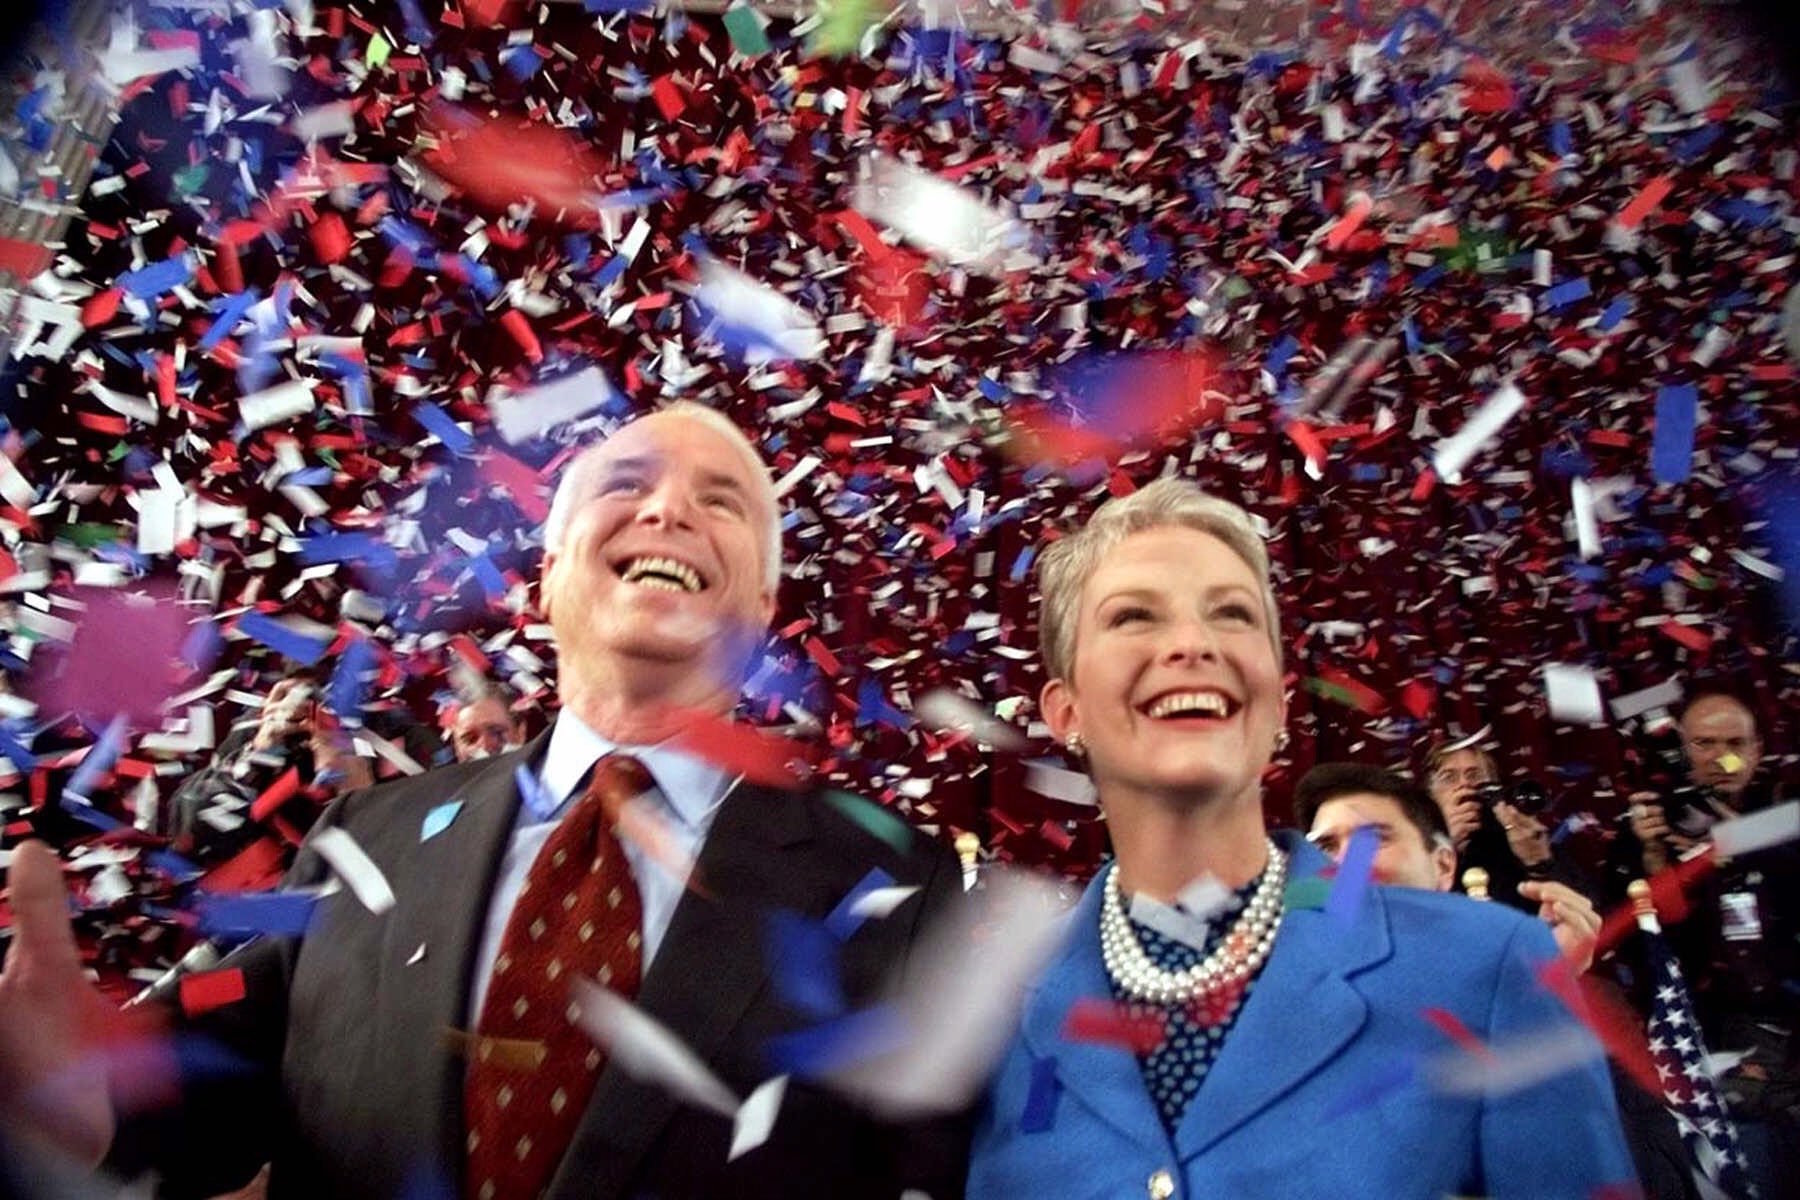 <div class='meta'><div class='origin-logo' data-origin='AP'></div><span class='caption-text' data-credit='AP Photo/Stephan Savoia'>Republican presidential candidate Sen. John McCain and his wife Cindy, smile as confetti falls on them at the end of  town hall meeting in Peterborough, N.H., on Jan 30, 2000.</span></div>